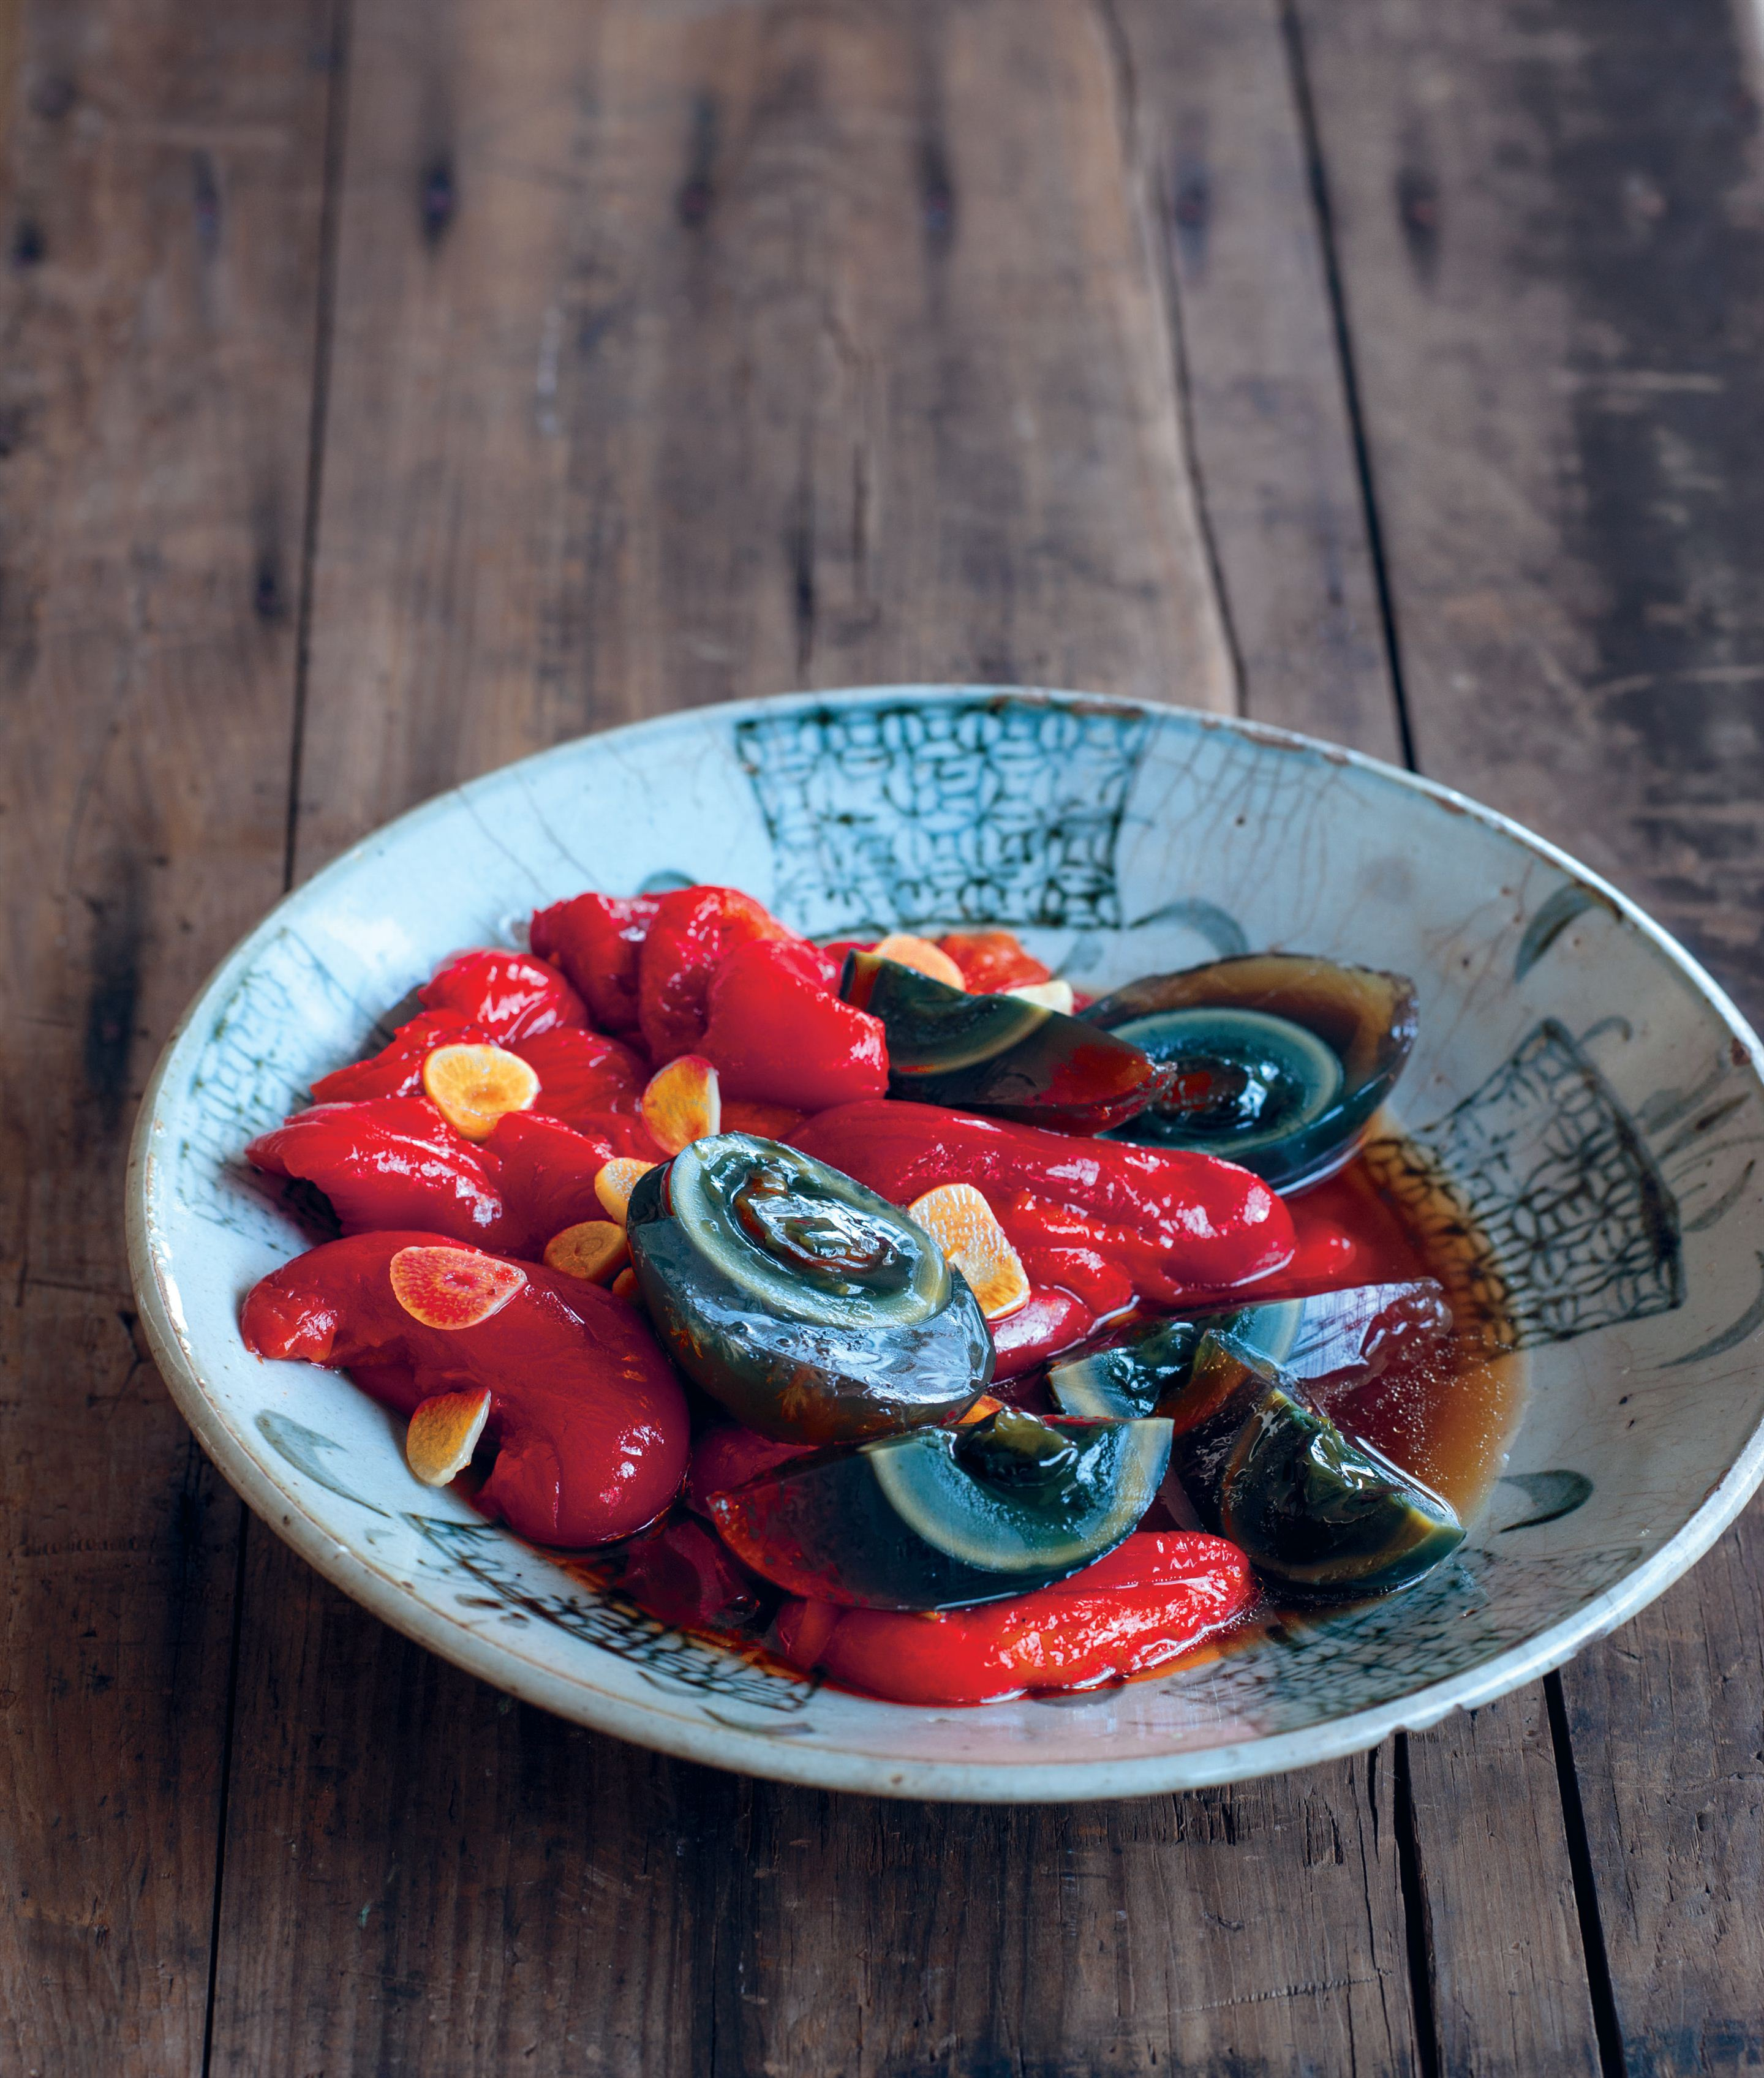 Braised red capsicums with century eggs